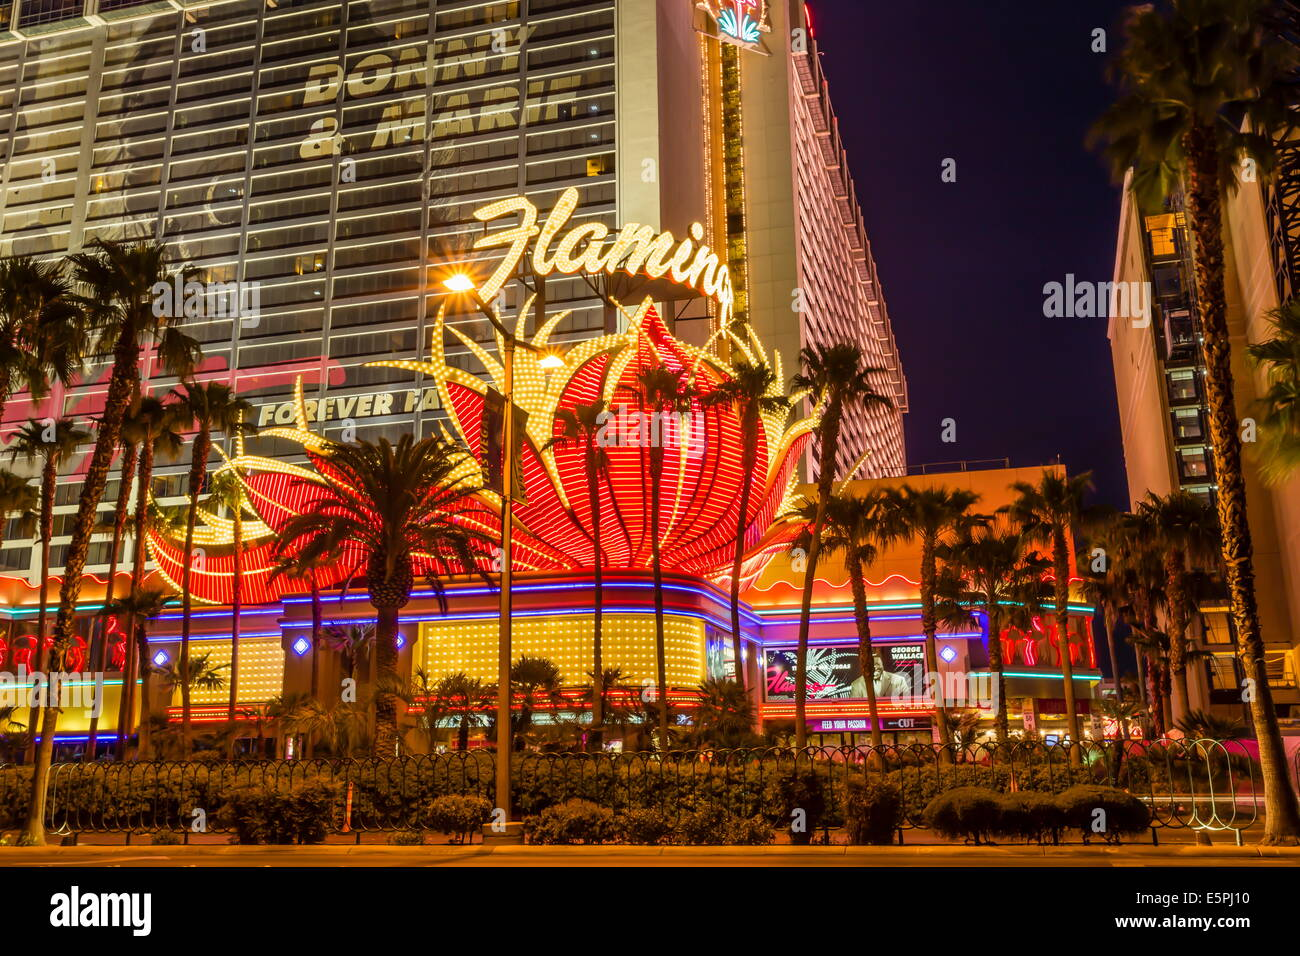 Neon lights, Las Vegas Strip at dusk with Flamingo Facade and palm trees, Las Vegas, Nevada, United States of America - Stock Image